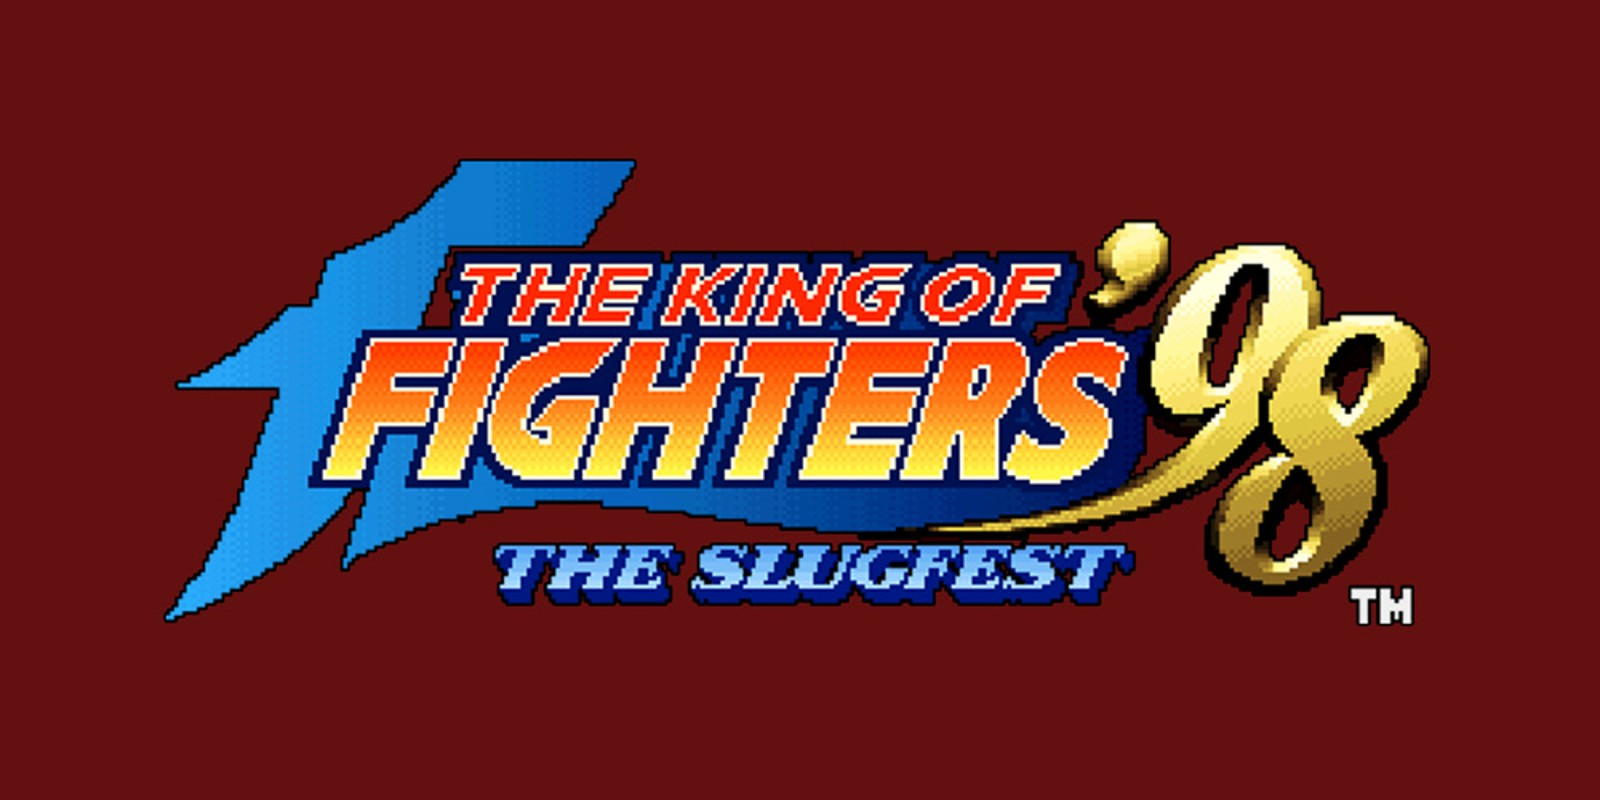 SI_WiiVC_KingOfFighters98_image1600w.jpg